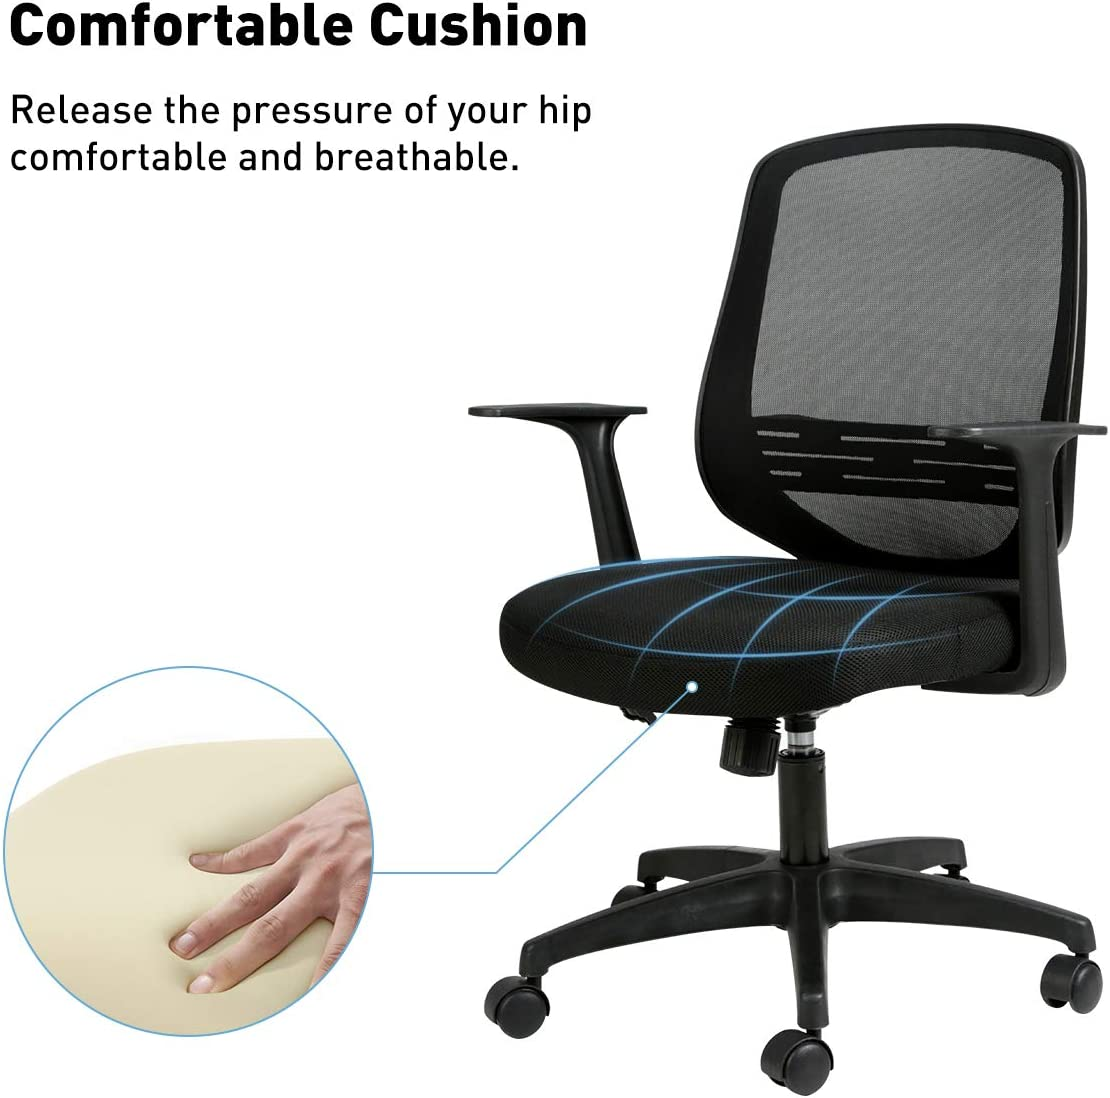 Black Hbada Home Desk Chair Mesh Office Chair with Arms and Adjustable Height